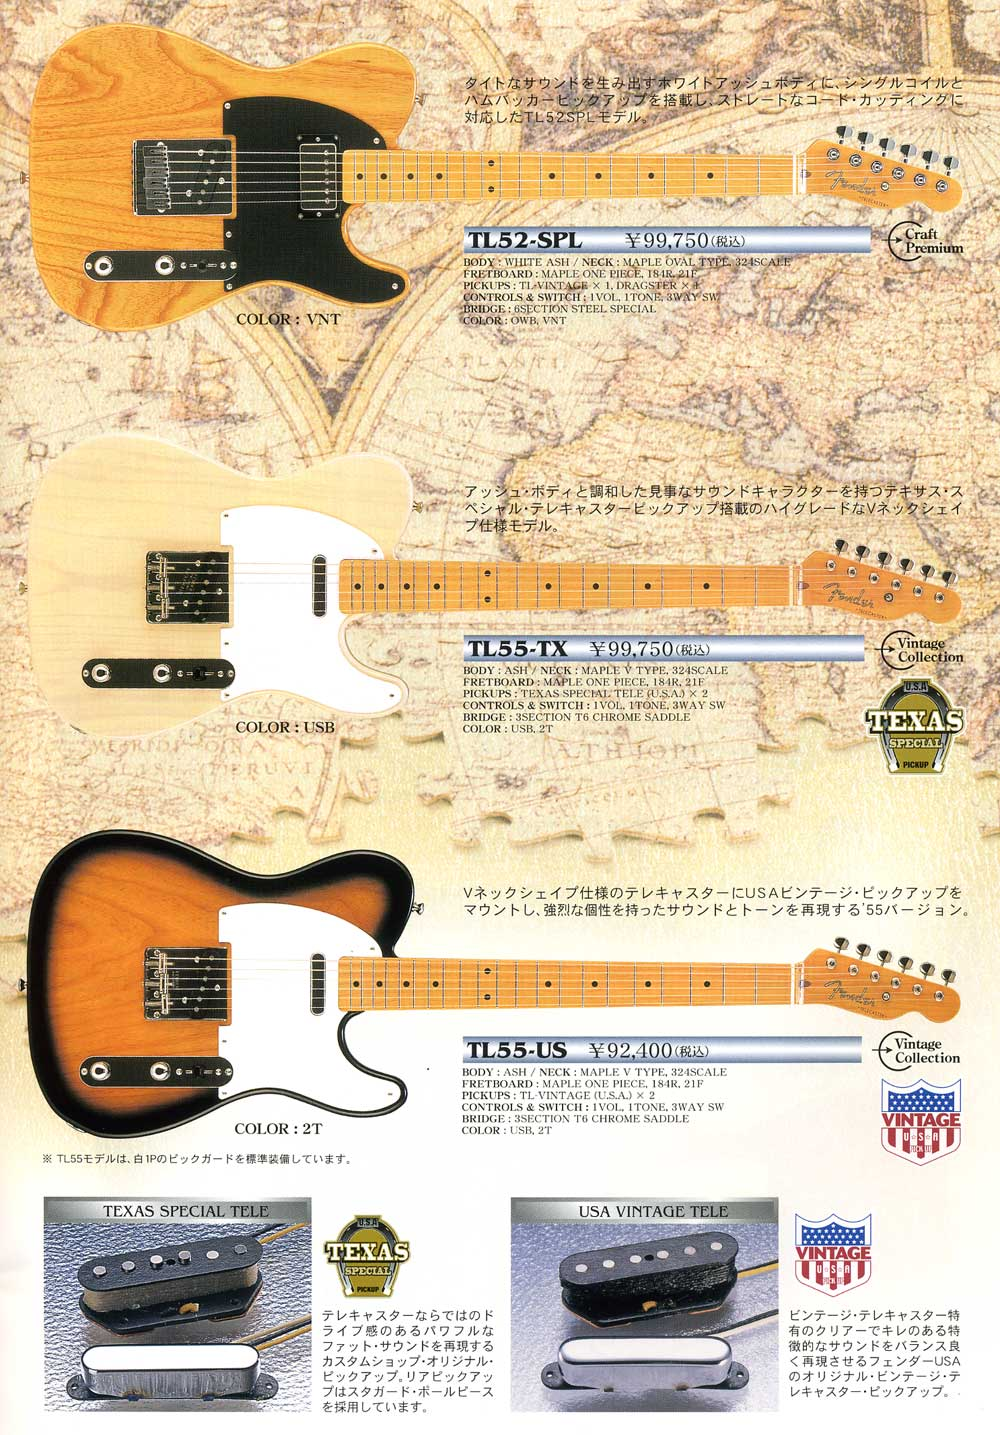 Telecaster Sale On Fender Texas Special Pickups Wiring Gas I Want A Keith Richards Micawber Tele My Les Paul Forum Img